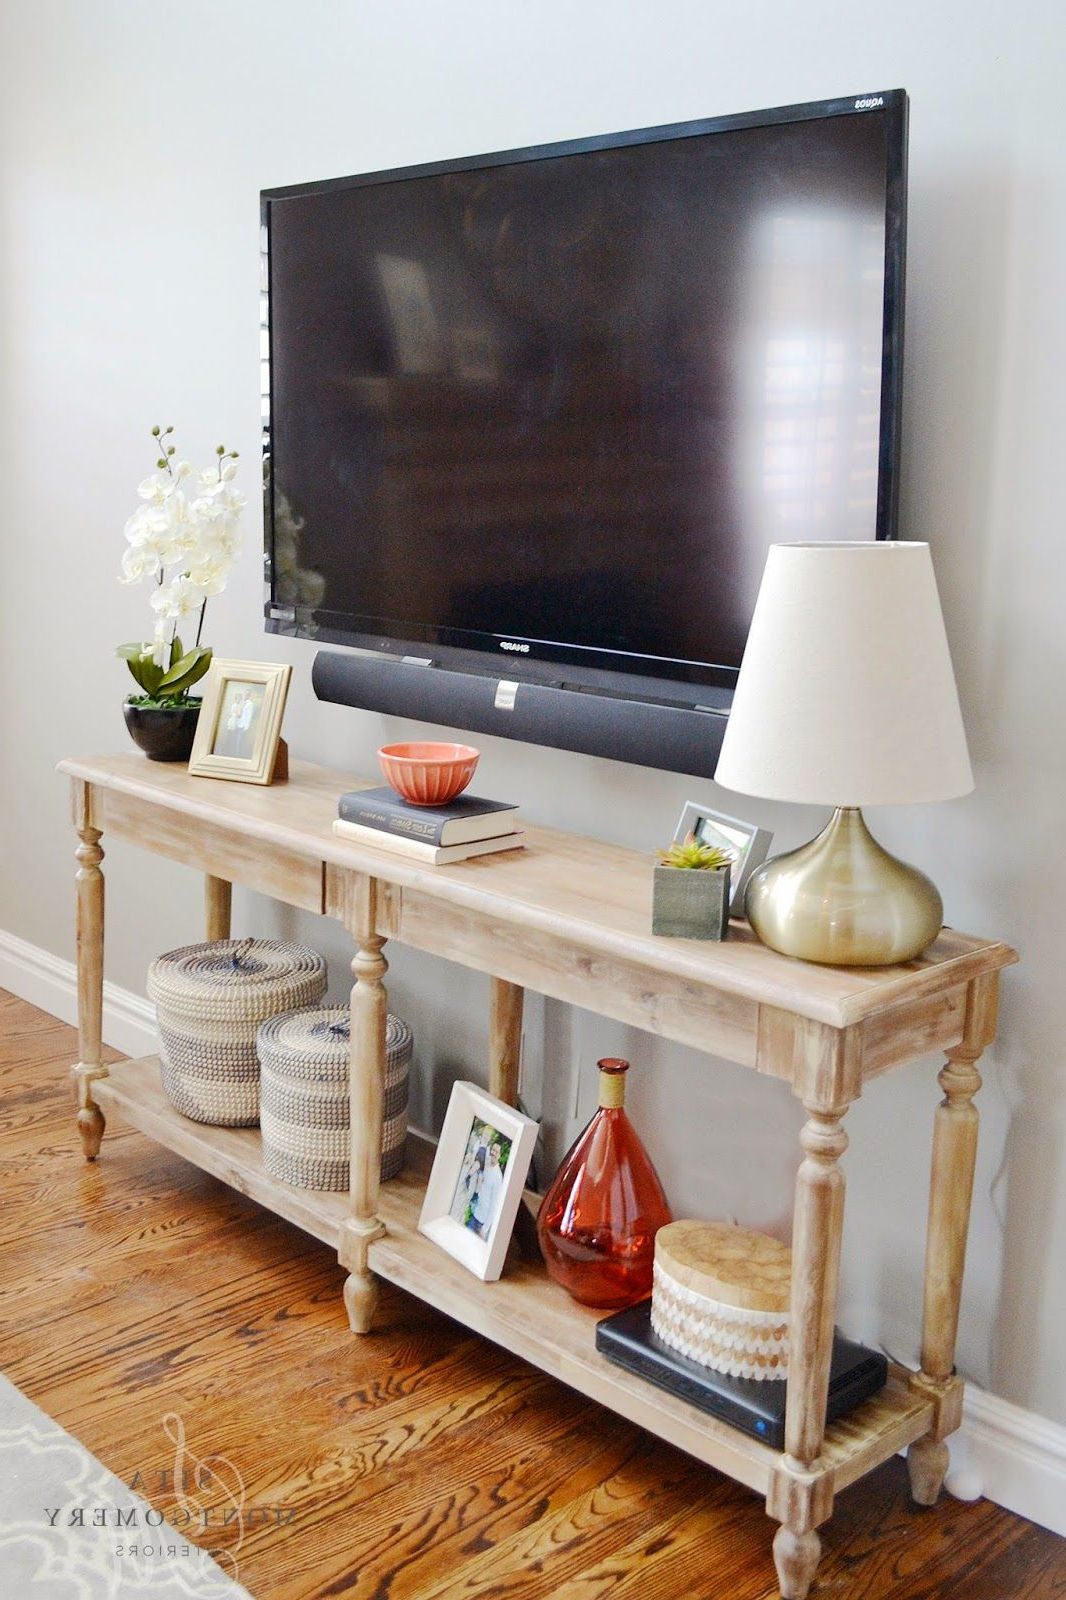 I Like The Use Of This Console Table As The Tv Stand | My Throughout Walters Media Console Tables (View 5 of 20)